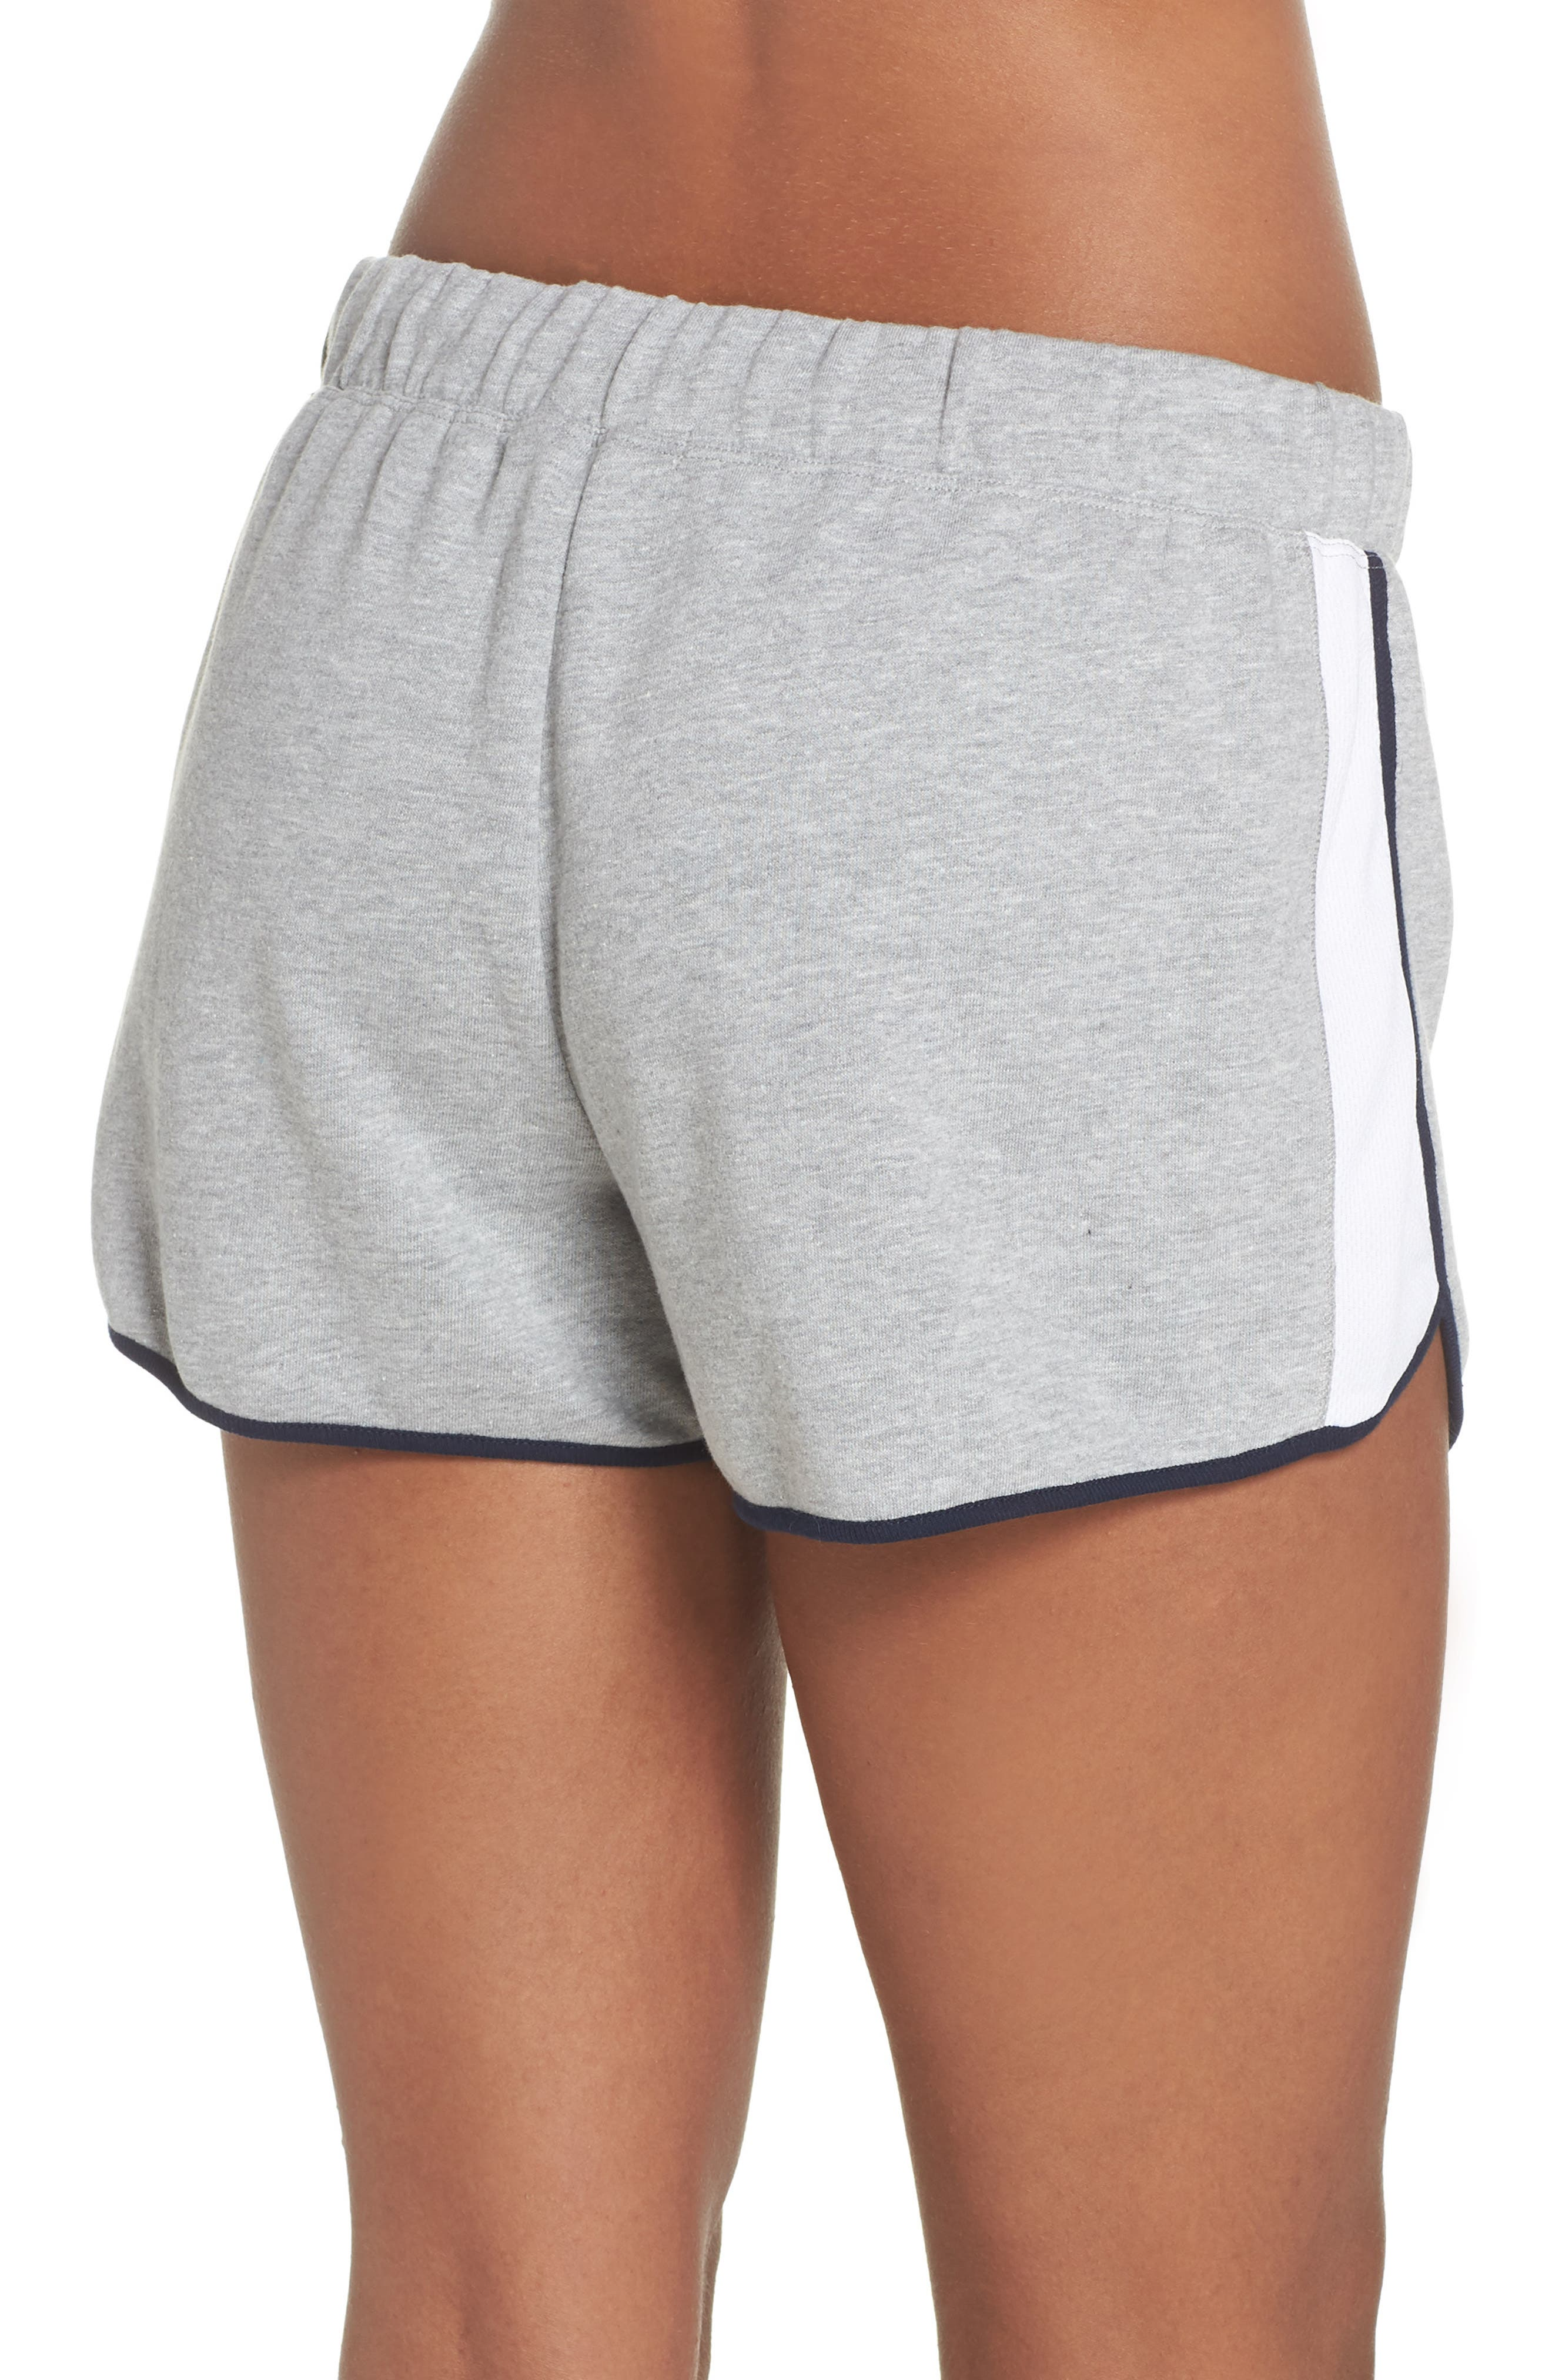 Lounge Shorts,                             Alternate thumbnail 2, color,                             Heather Gray